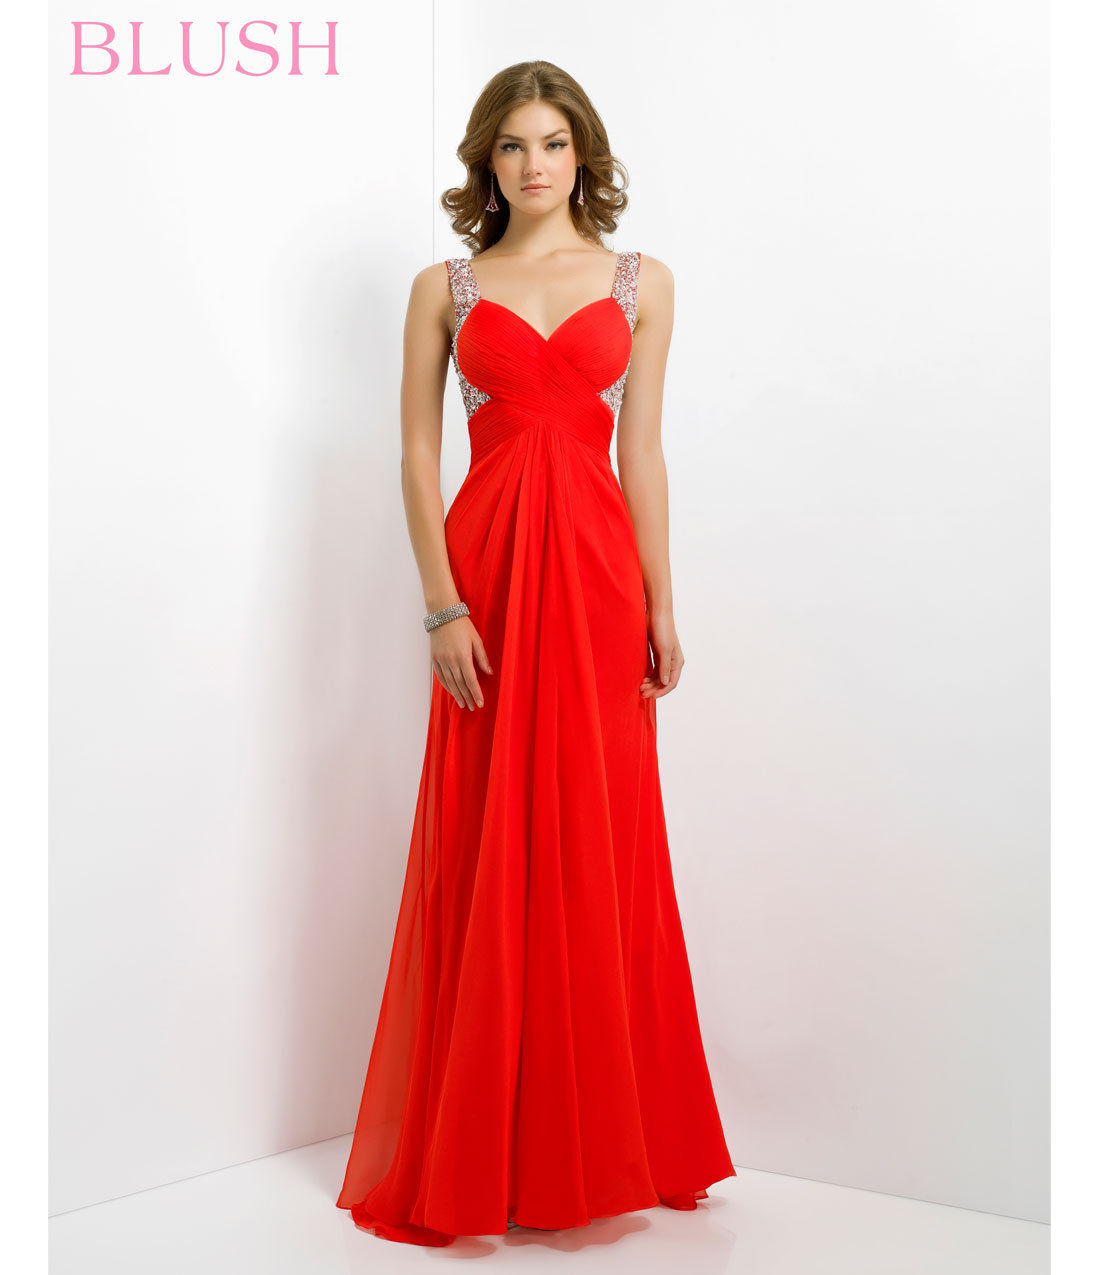 maid of honor dresses red 20142015 fashion trends 20162017